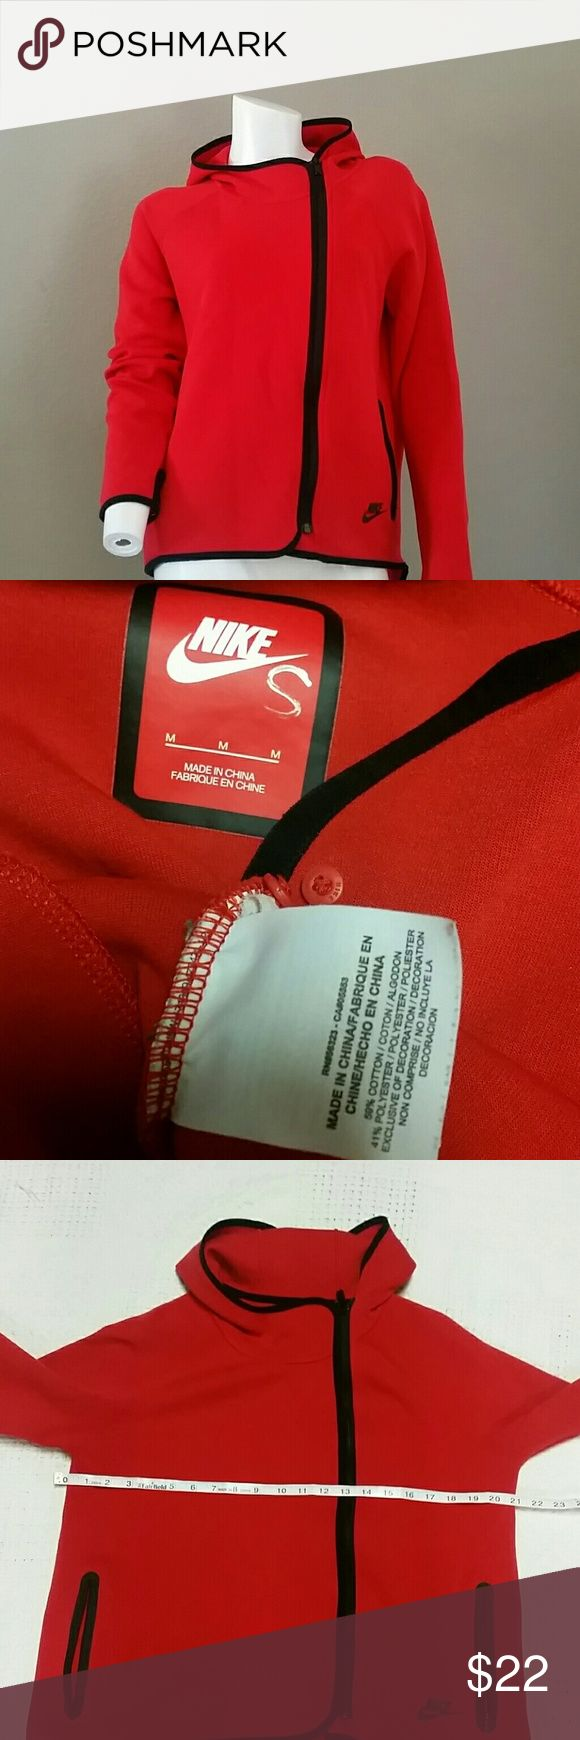 Nike tech red full zip hoodie jacket high low M Nike tech red with black trim jacket, off side front full zip, hooded, high low hem, frint zip pockets, preowned, slight pilling, cotton polyester blend, thumb holes Nike Tops Sweatshirts & Hoodies